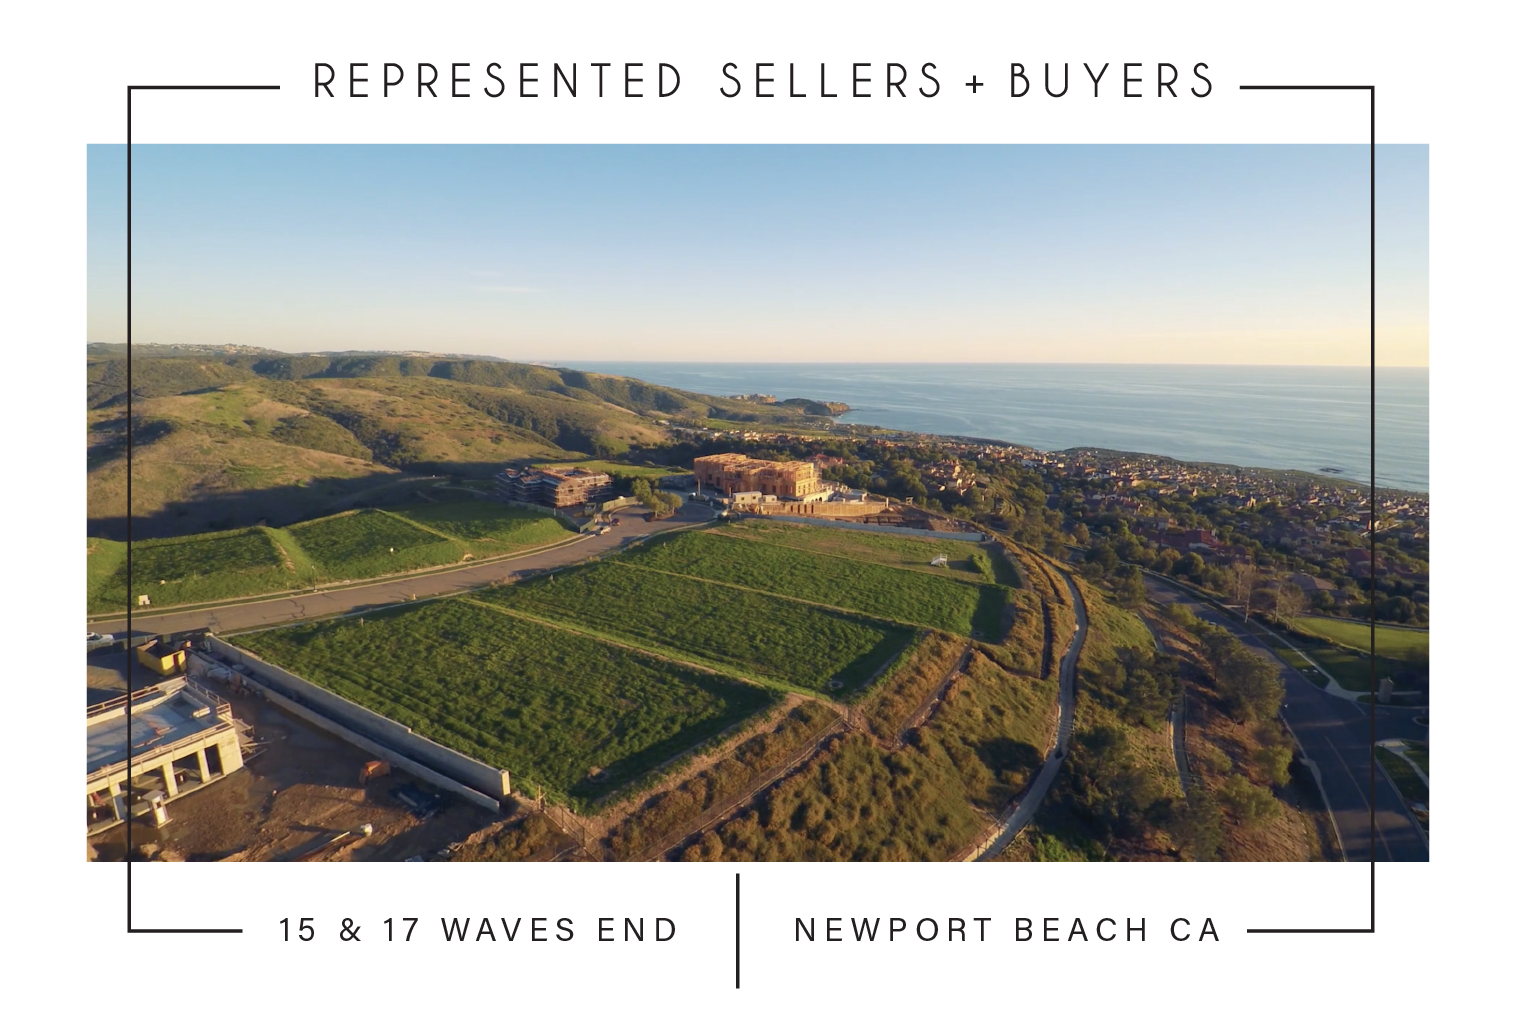 SOLD 01/04/2019 $25,500,000  15 & 17 WAVES END, SAN CLEMENTE CA